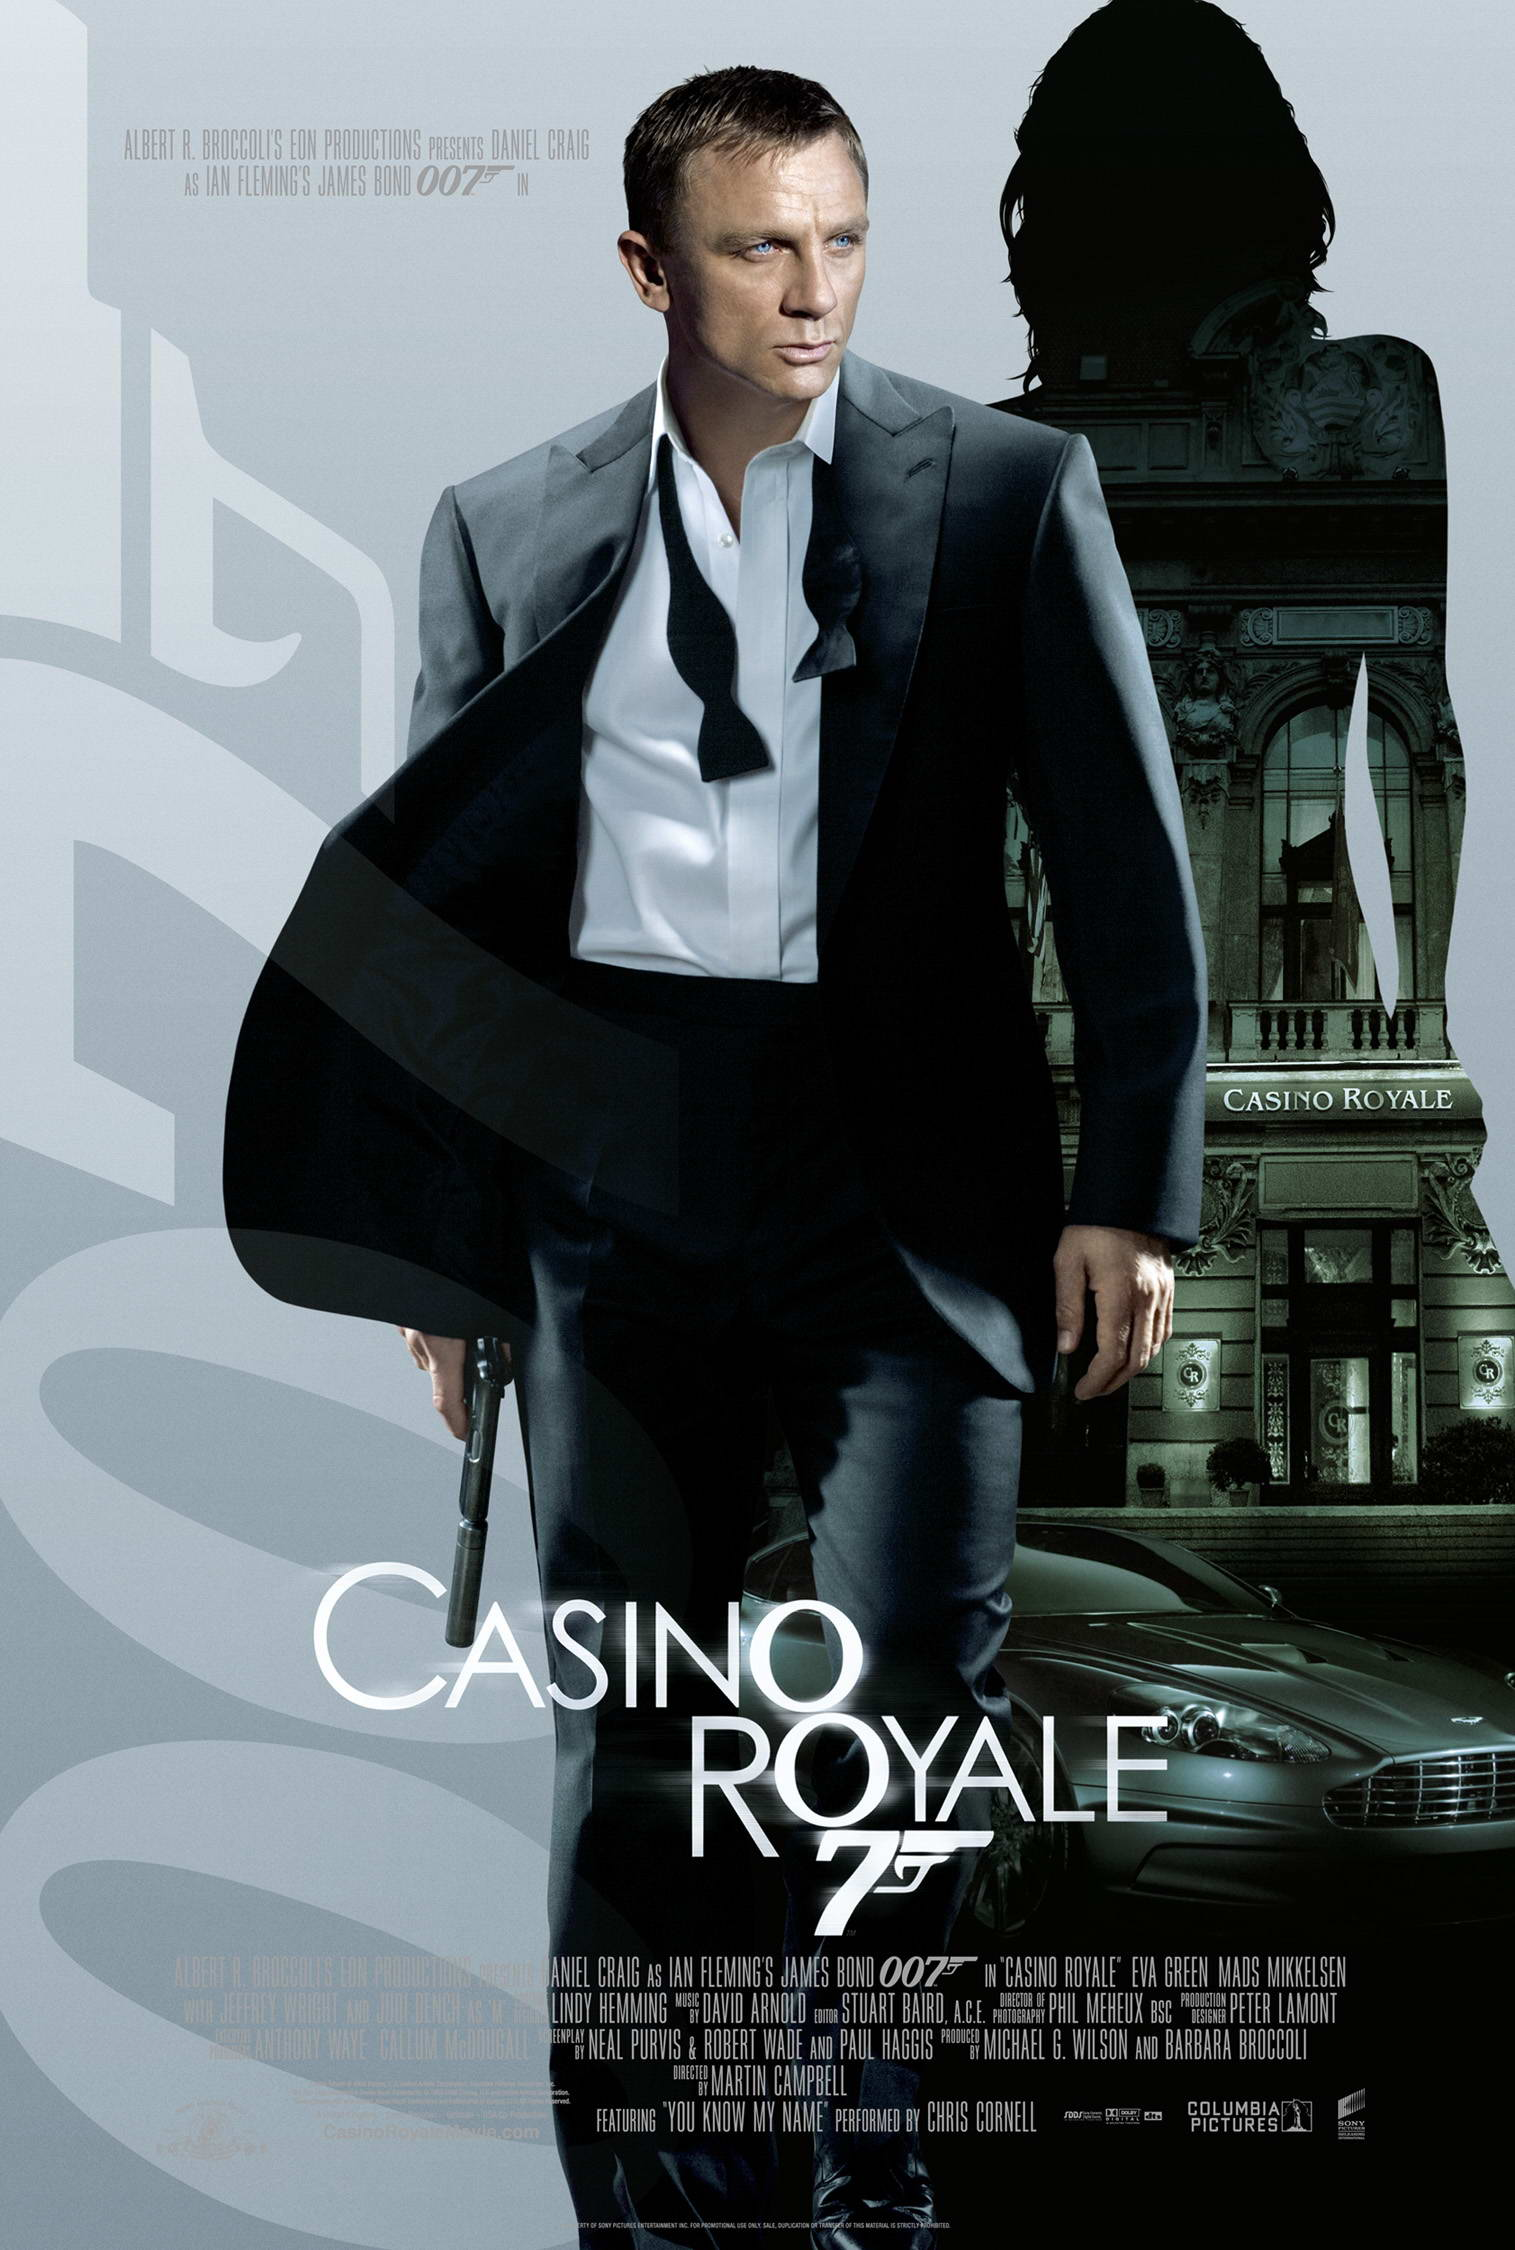 casino royale online movie free www sizling hot